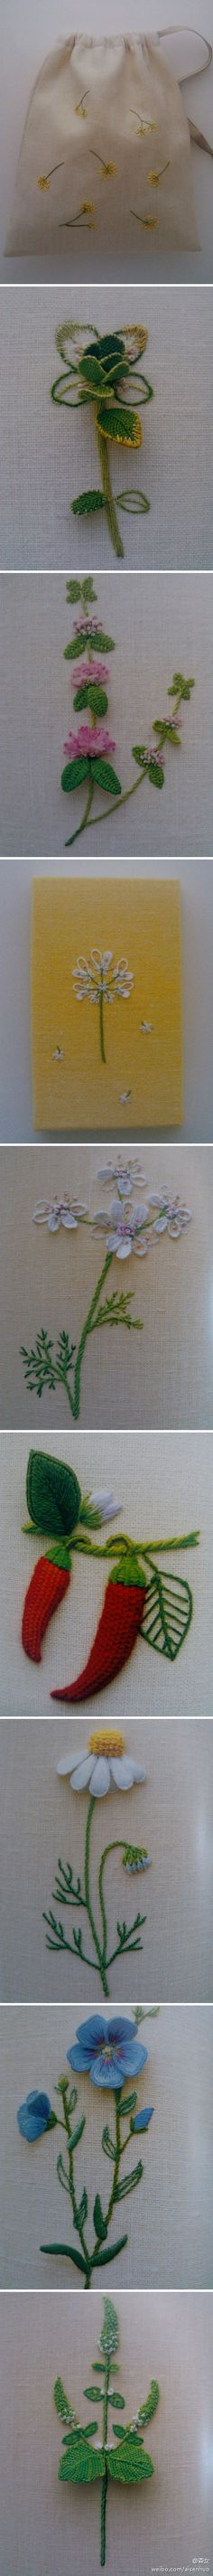 great flower embroidery